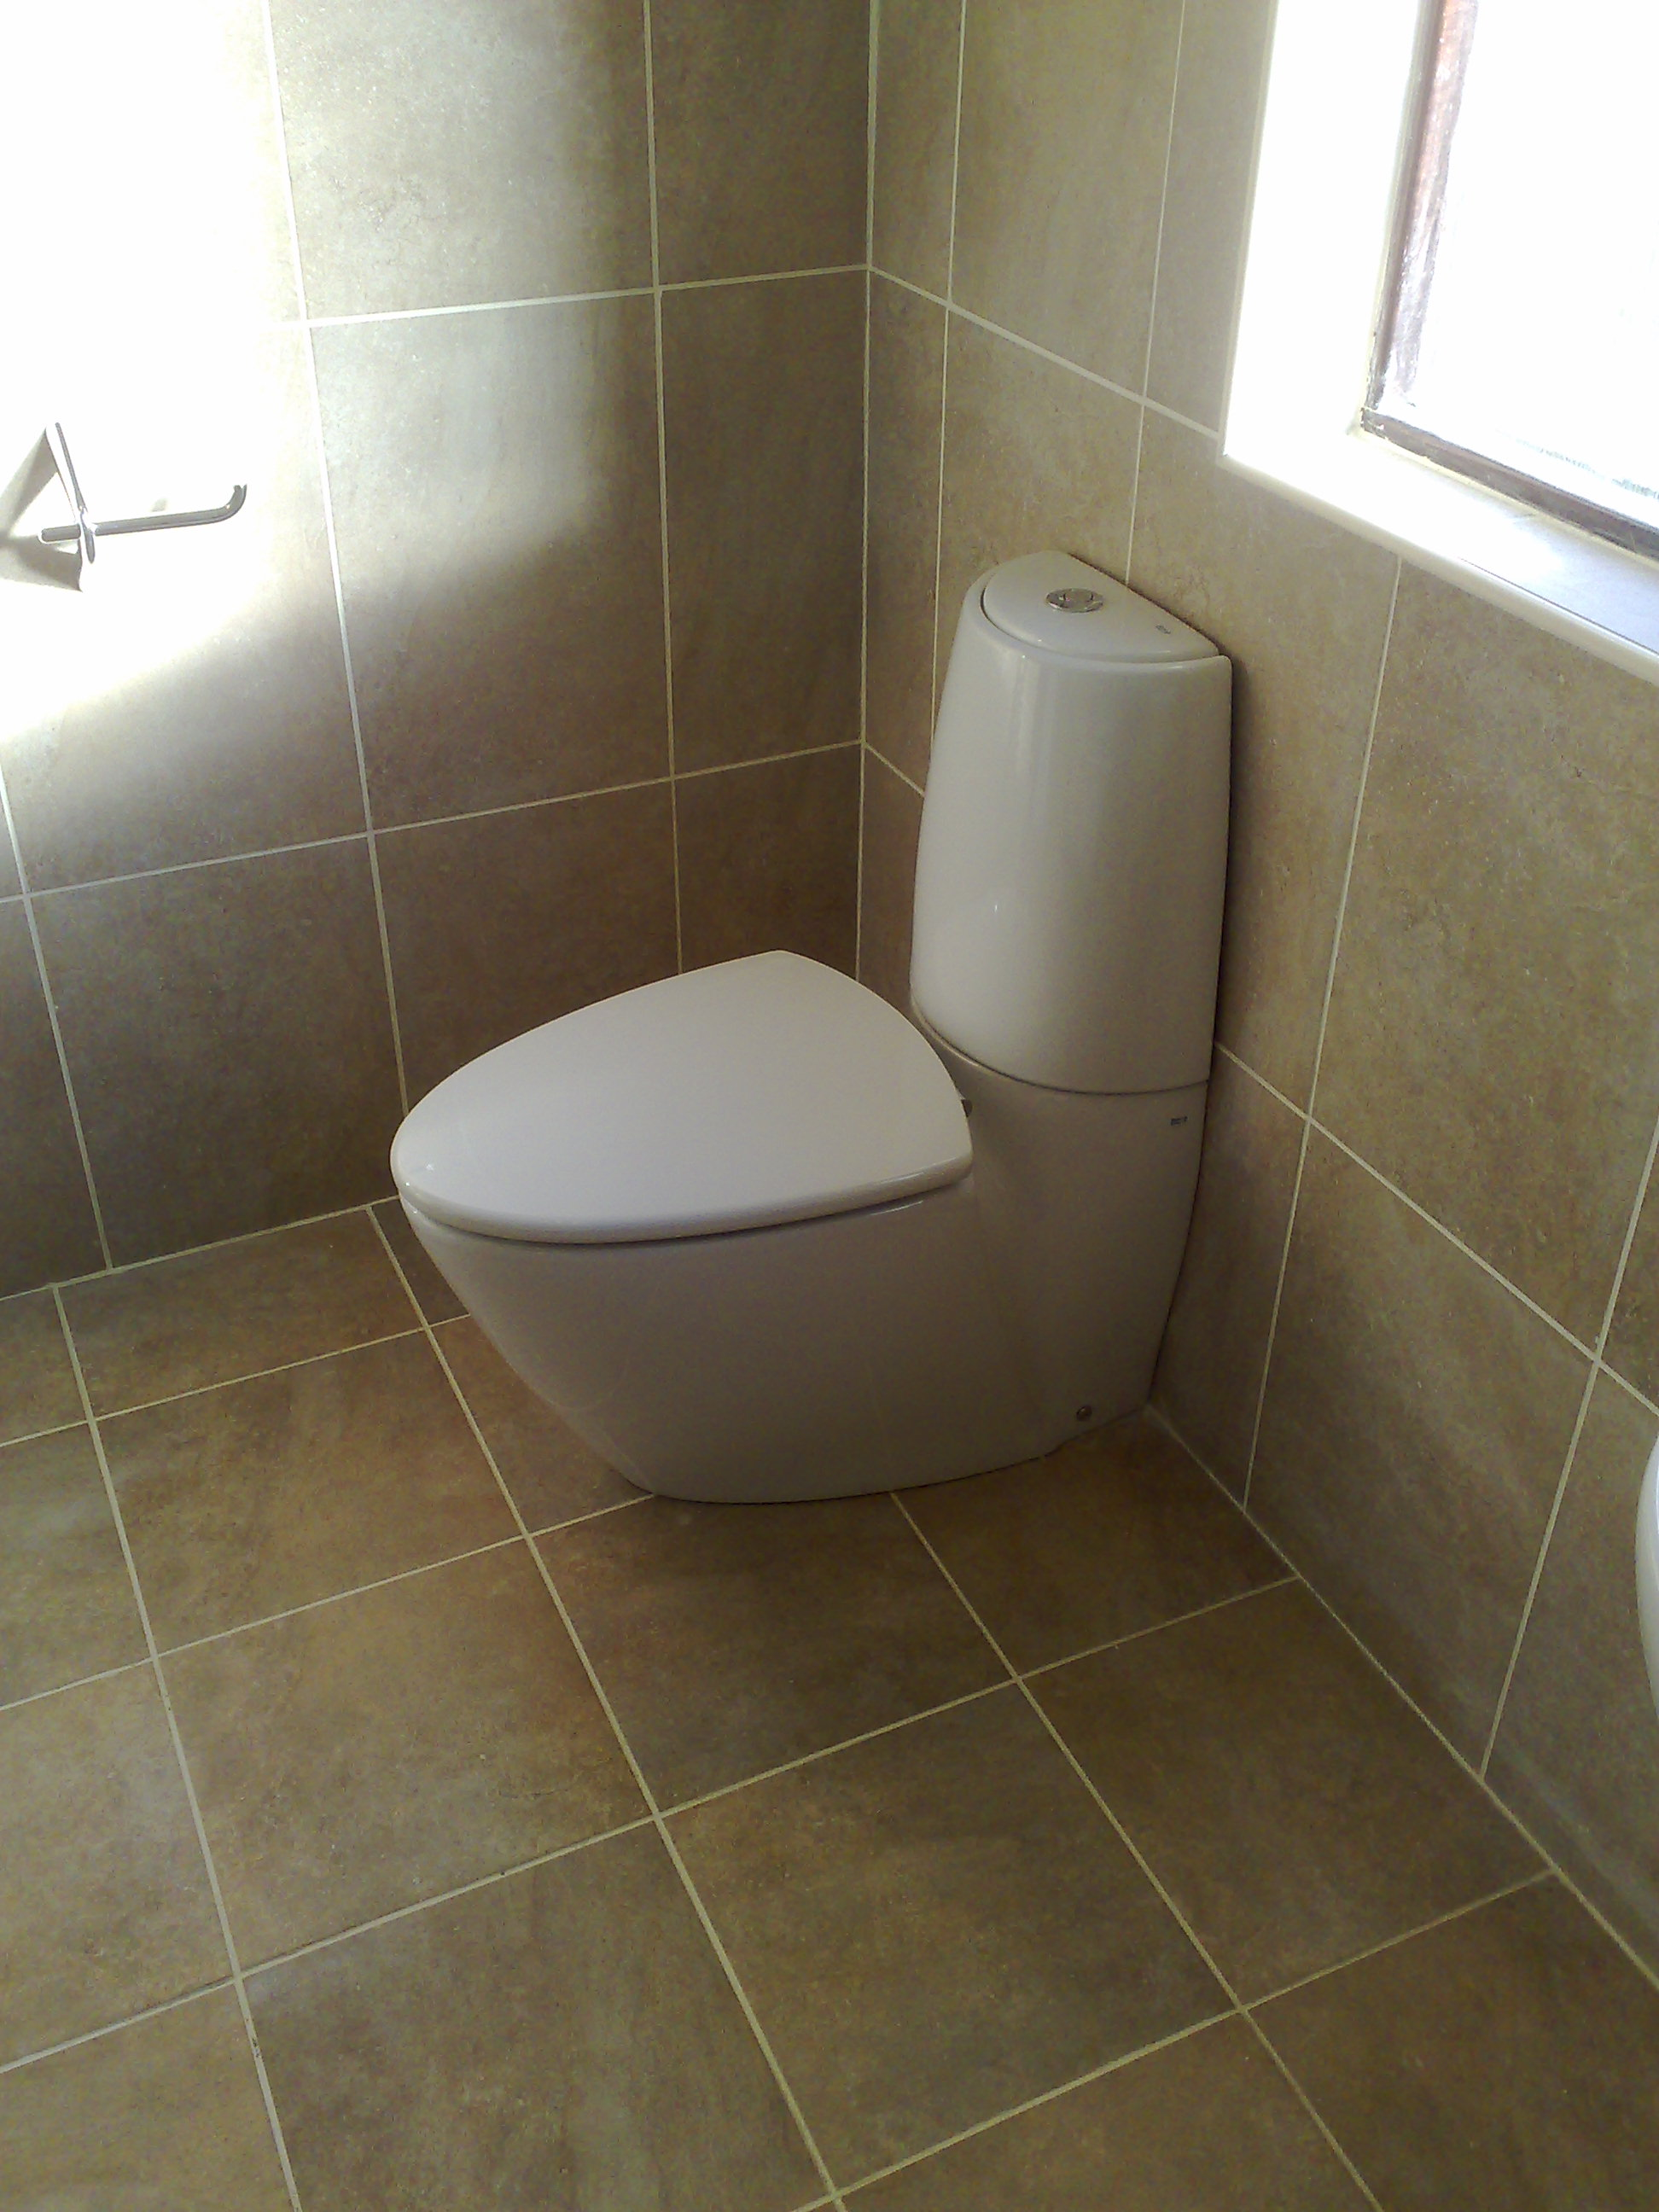 Beautiful Tiled Toilets Gallery - The Best Bathroom Ideas - lapoup.com